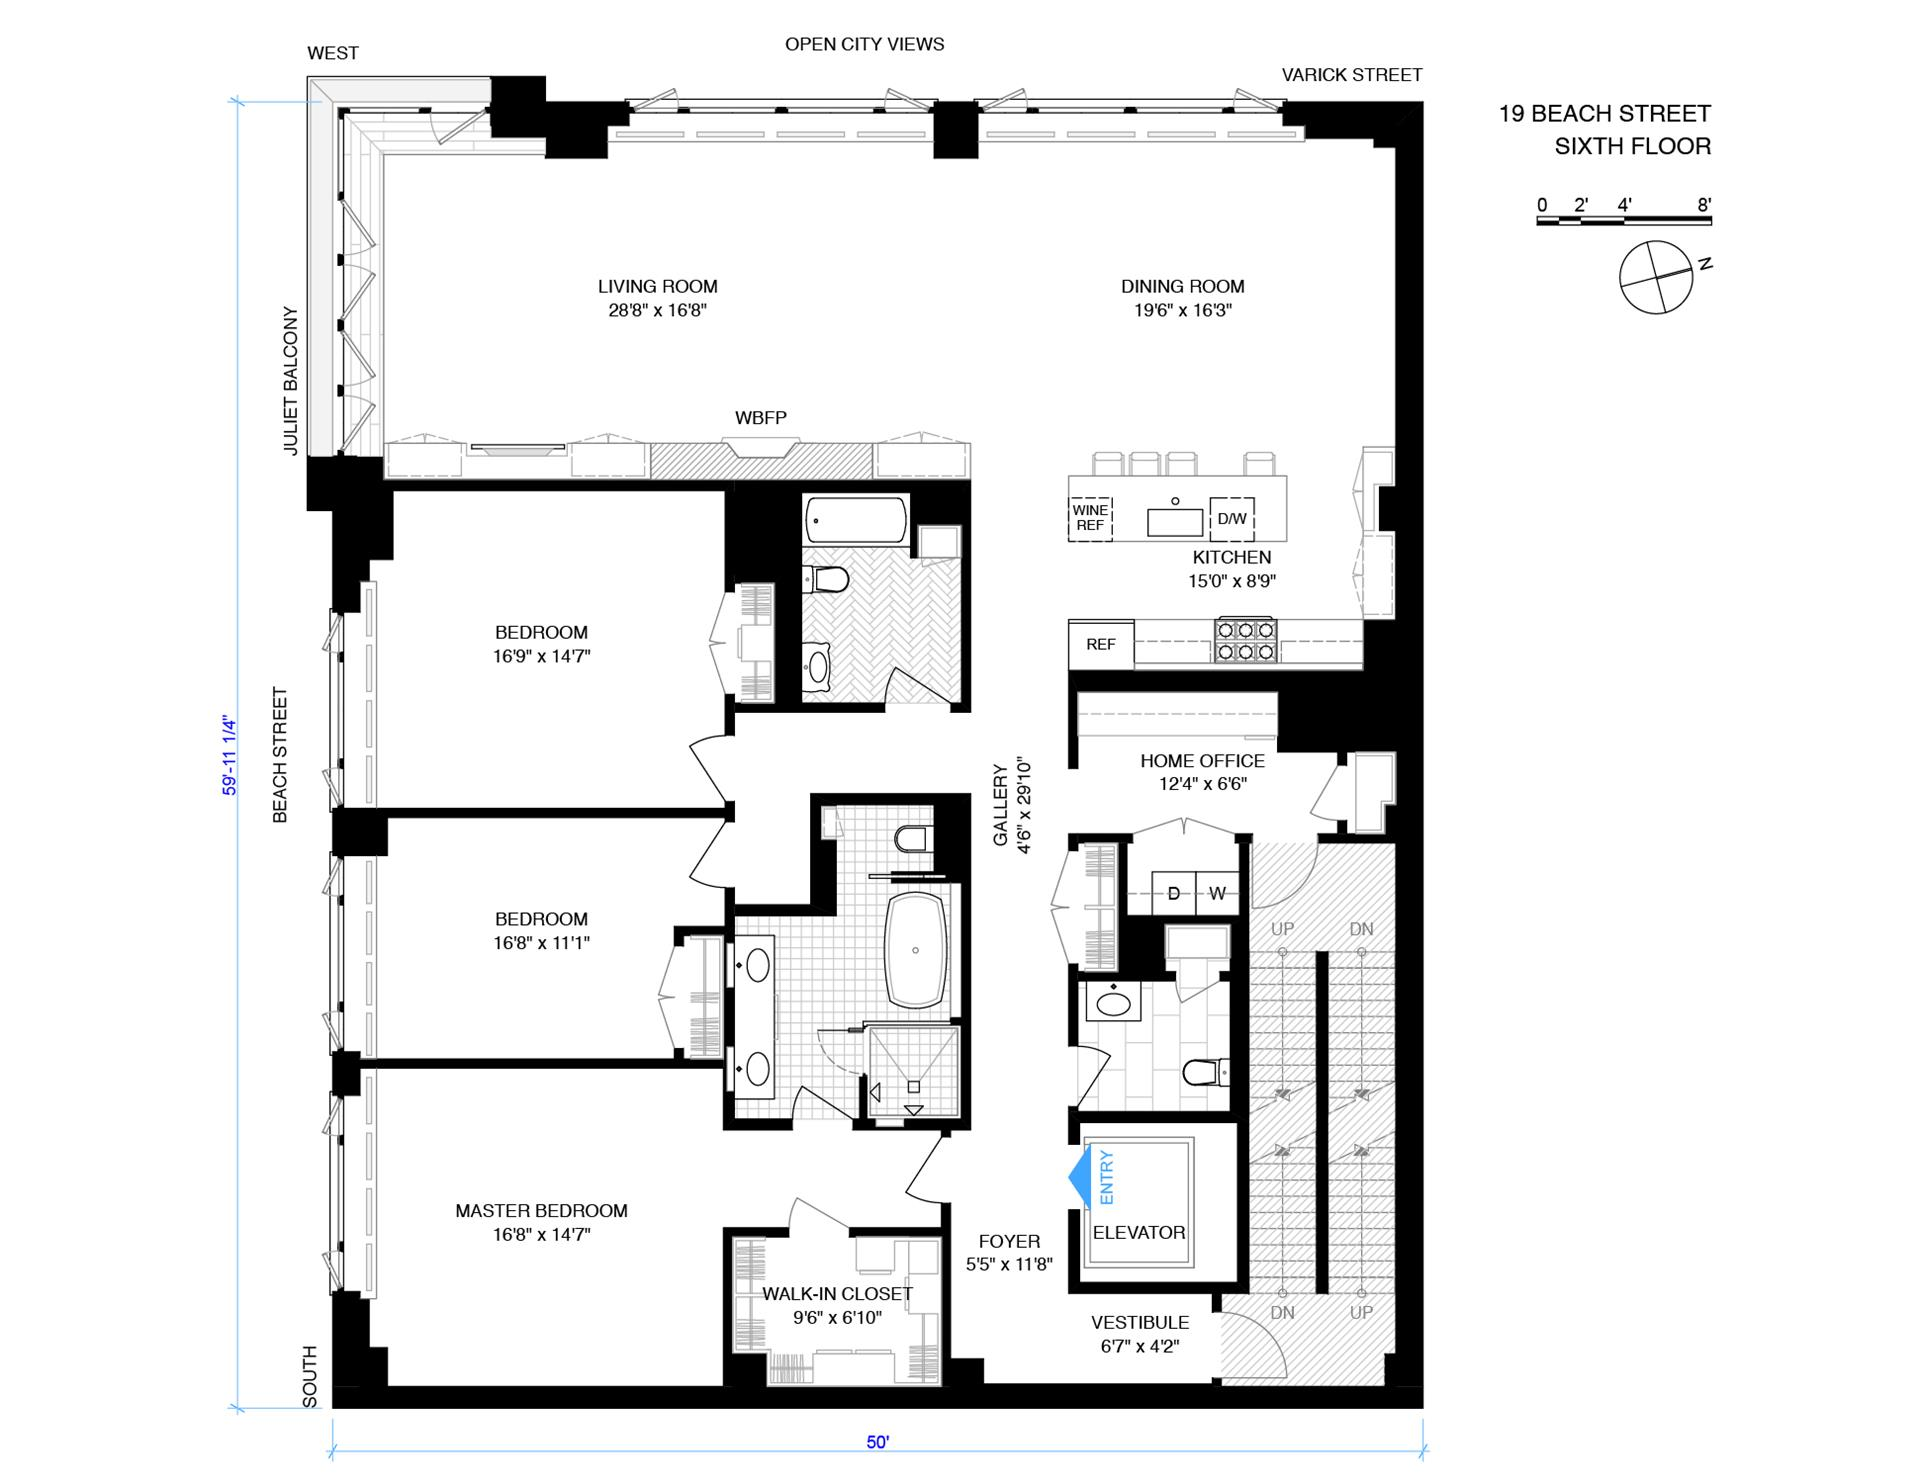 Floor plan of 19 Beach St, 6 - TriBeCa, New York